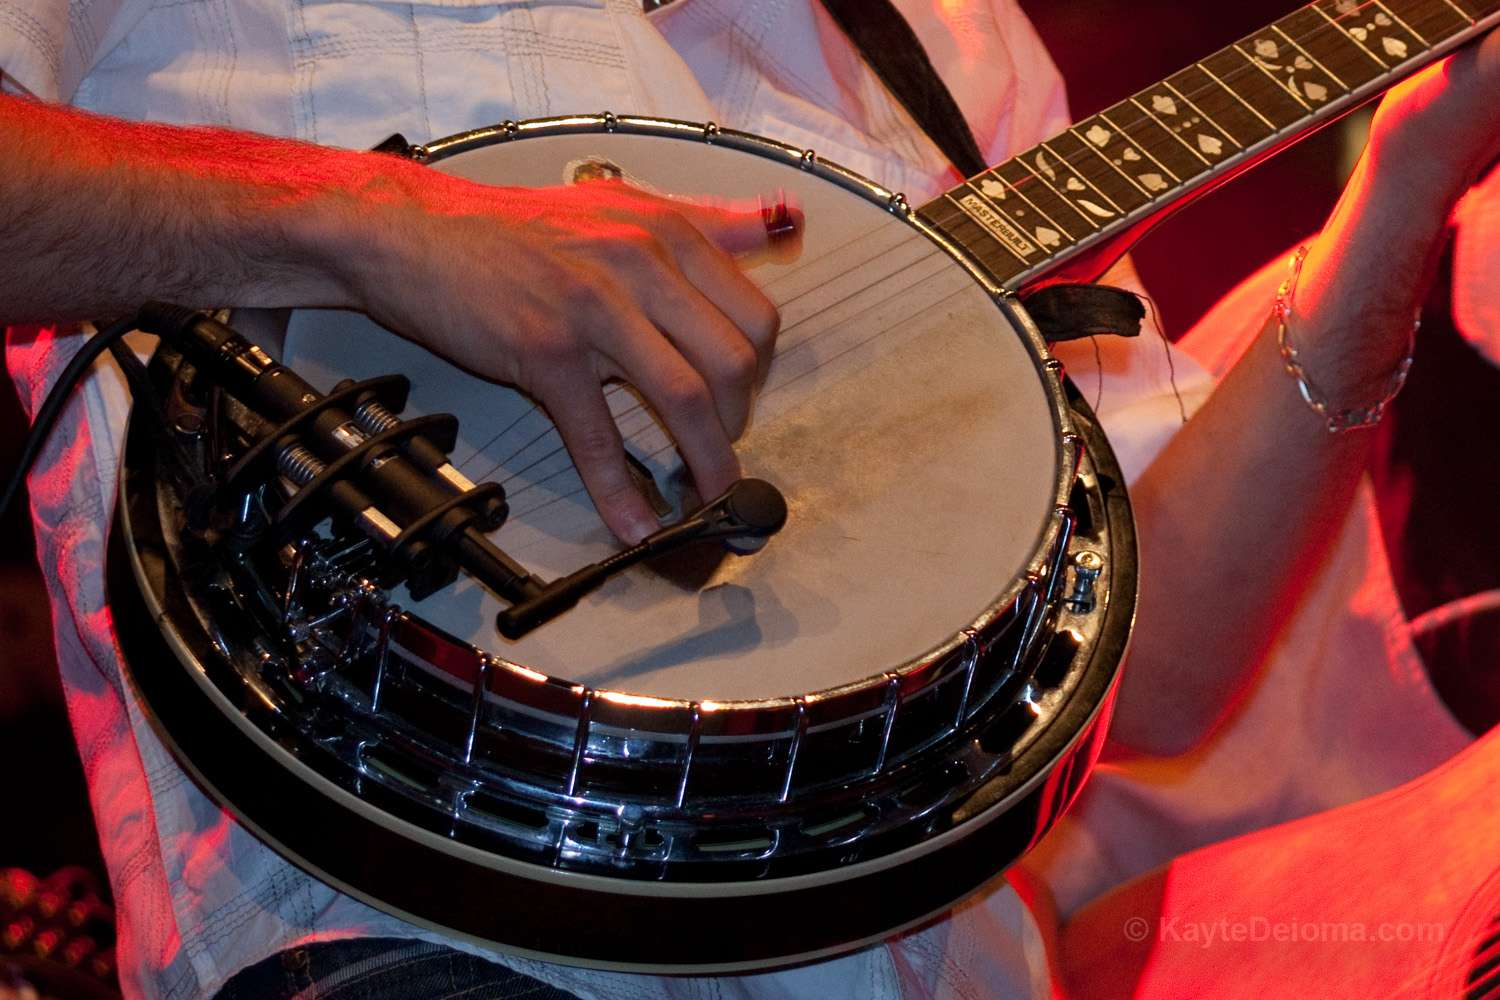 Banjo player on stage